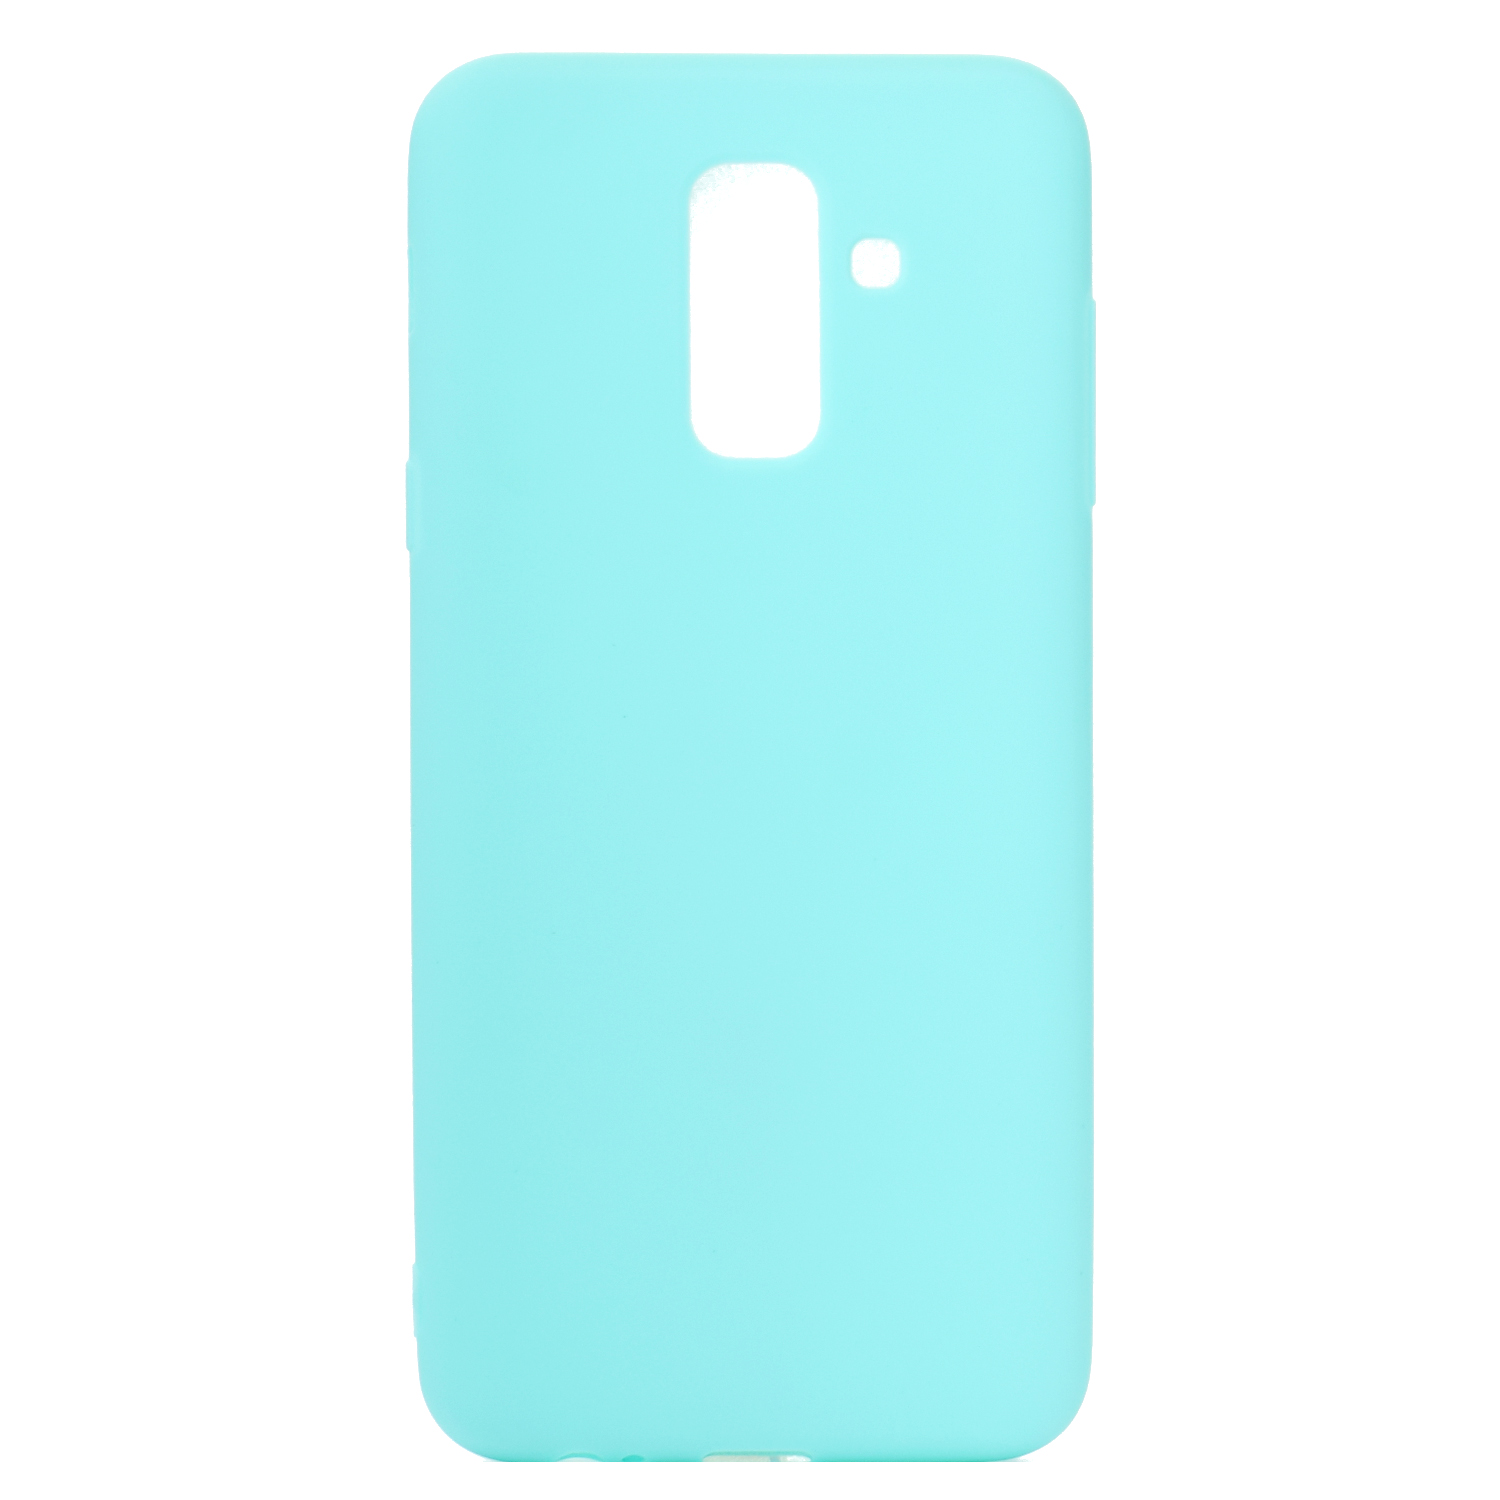 for Samsung A6 plus 2018 Lovely Candy Color Matte TPU Anti-scratch Non-slip Protective Cover Back Case Light blue